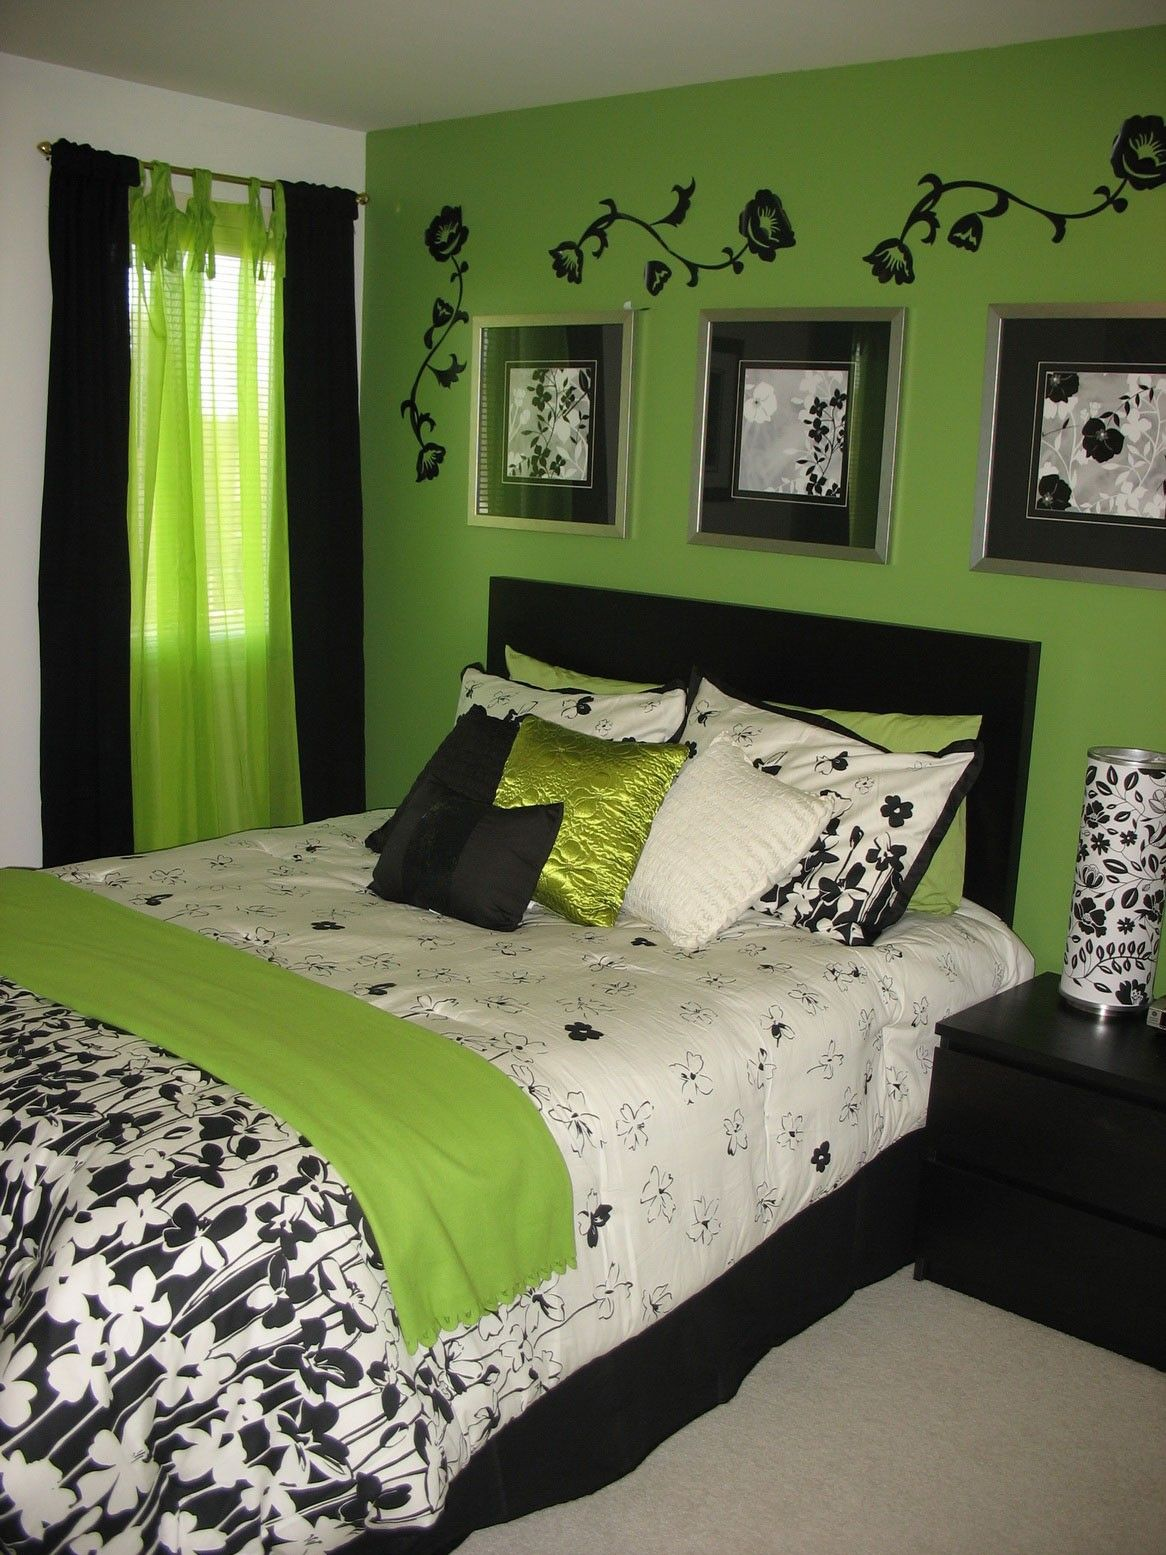 Pin By Melissa Rodgers On Teen Bedroom Ideas Girl Pinterest